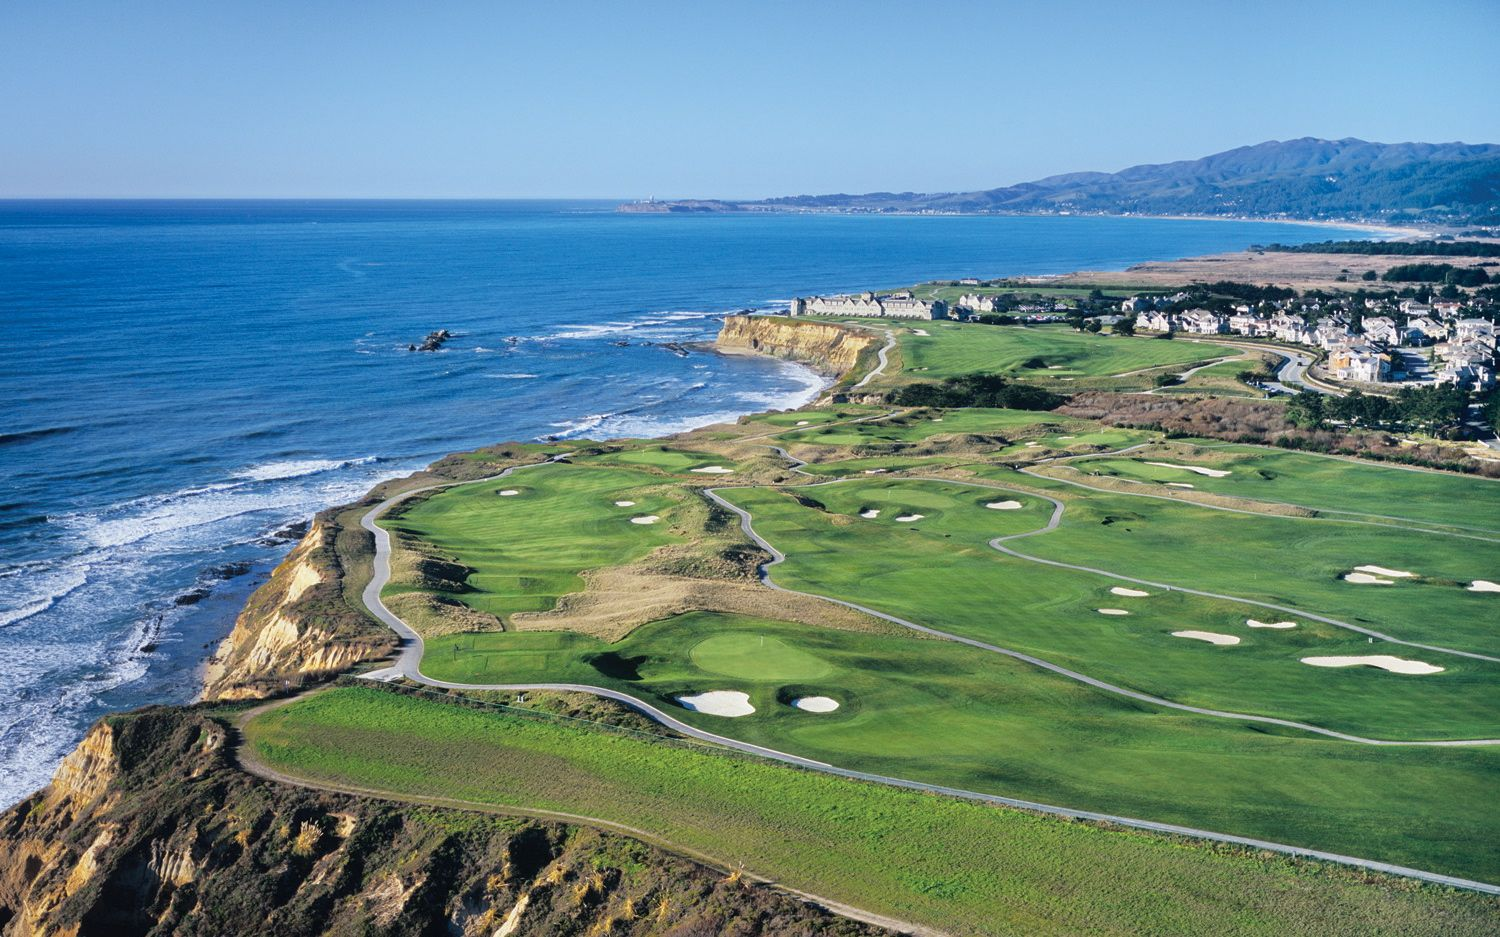 Overview of golf course named Half Moon Bay Golf Links